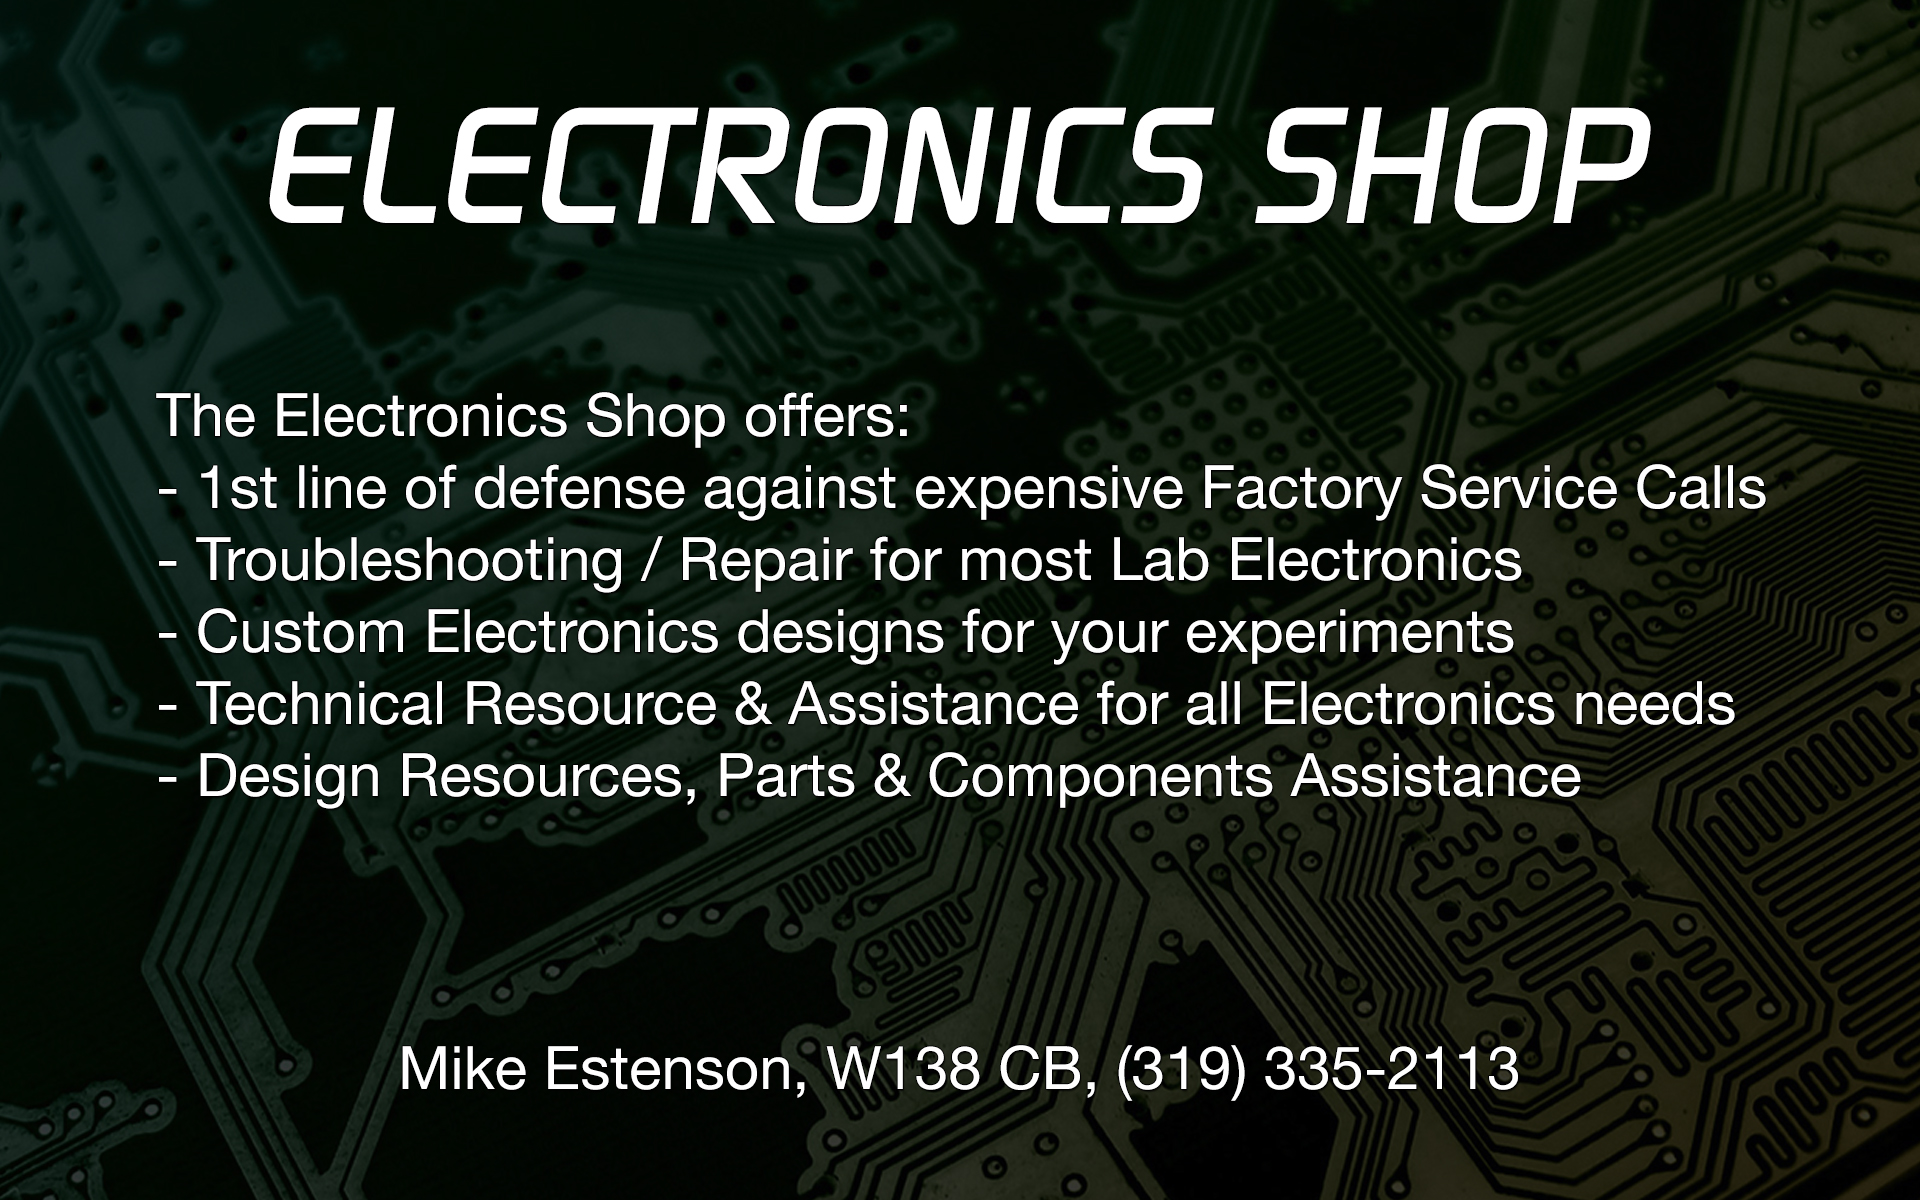 The Electronics Shop offers; 1st line of defense against expensive Factory Service Calls, Troubleshooting and Repair for most Lab Electronics, Custom Electronics designs for your experiments, Technical Resource and Assistance for all Electronics needs, and Design Resources, Prats and Components Assistance. Contact Mike Estenson, W138 CB, (319) 335-2113